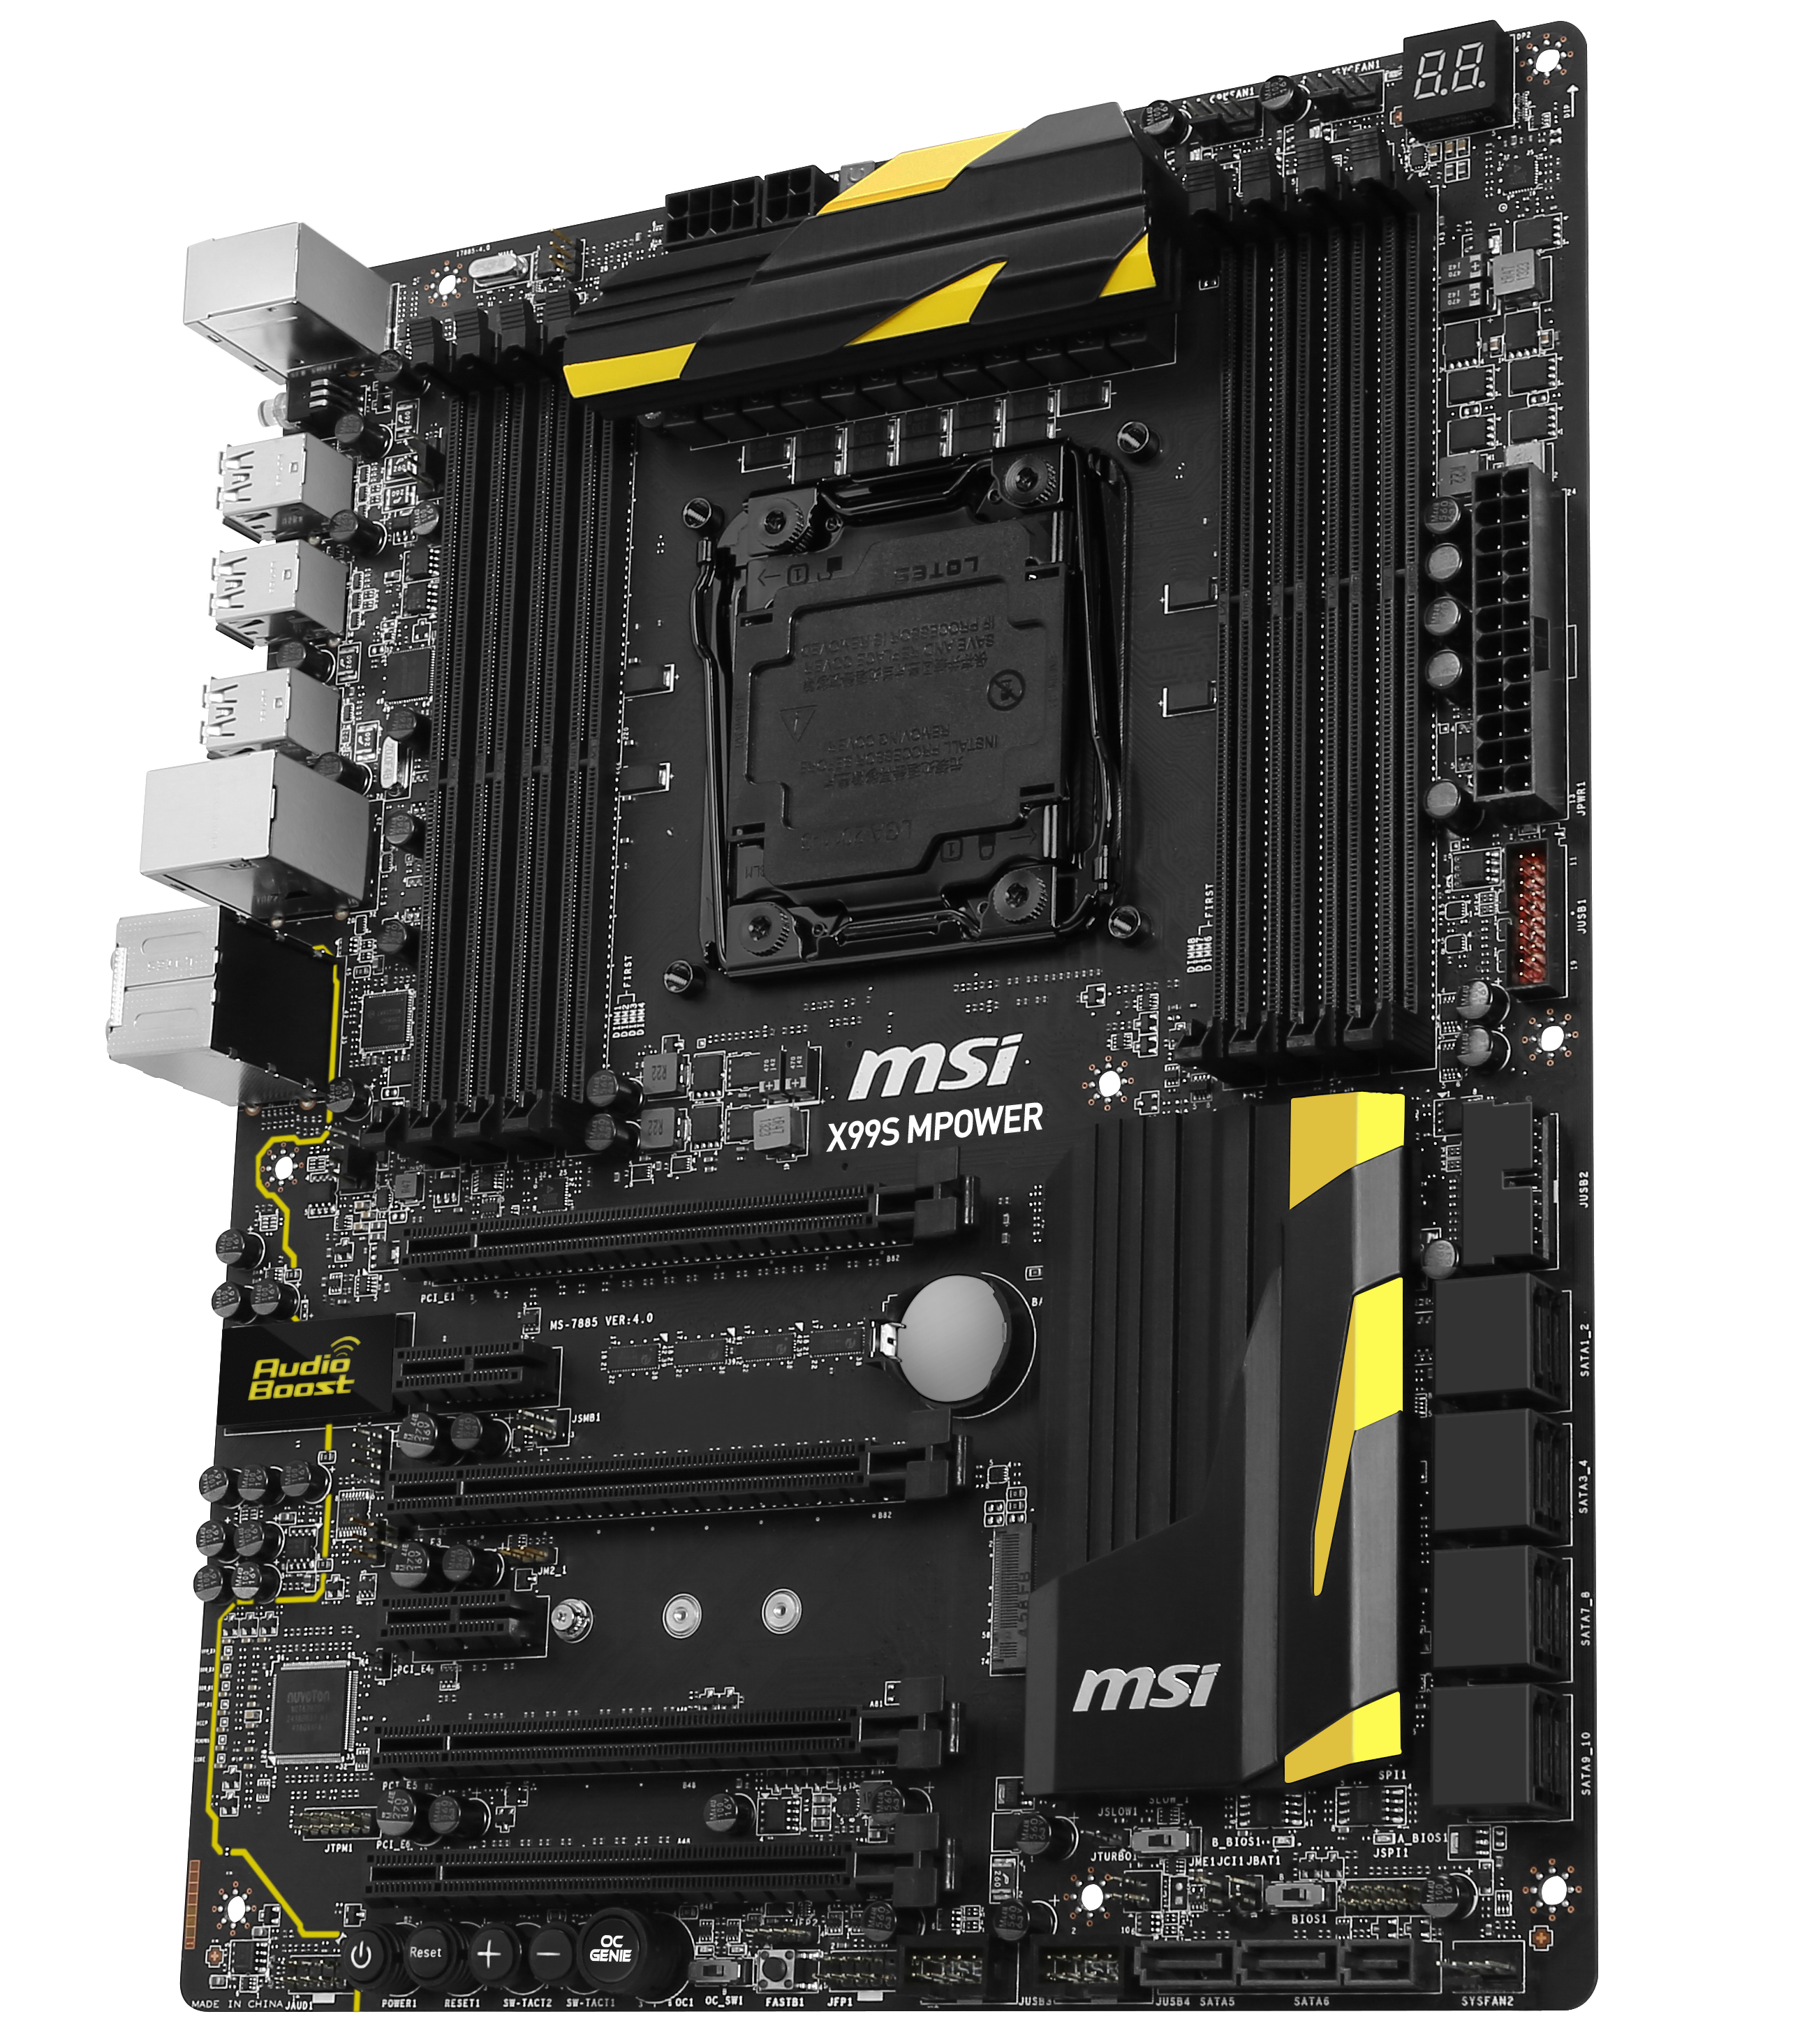 MSI X99S MPOWER ASMEDIA USB 3.1 WINDOWS VISTA DRIVER